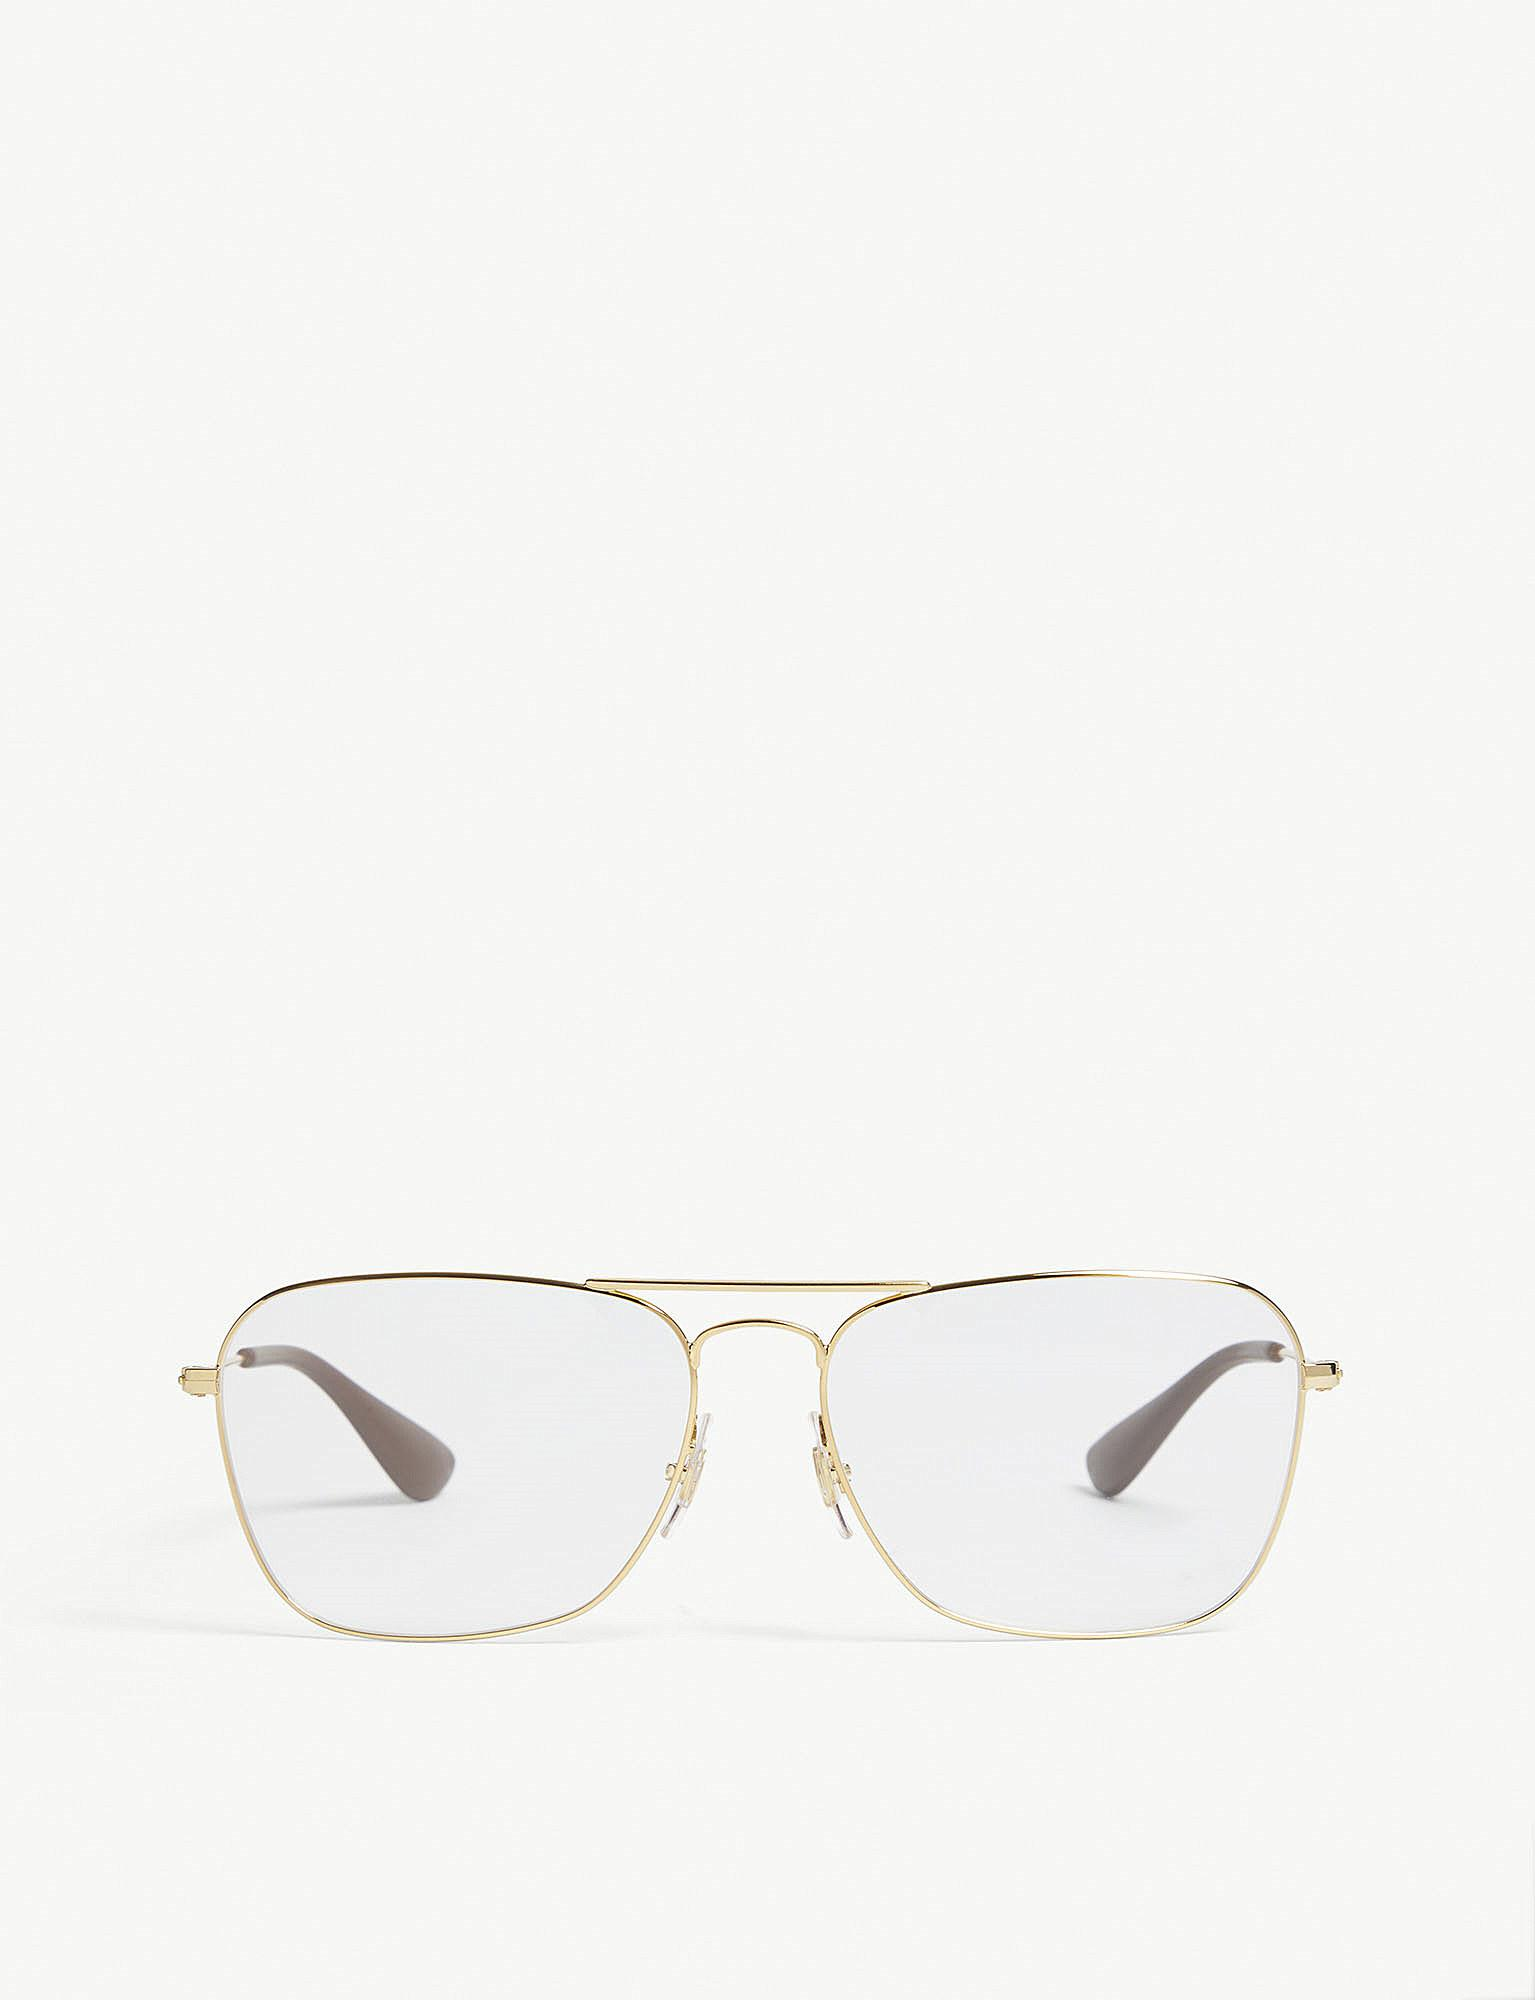 ray ban rb3610v square frame glasses in metallic for men lyst Ray-Ban Aviator RB3026 ray ban